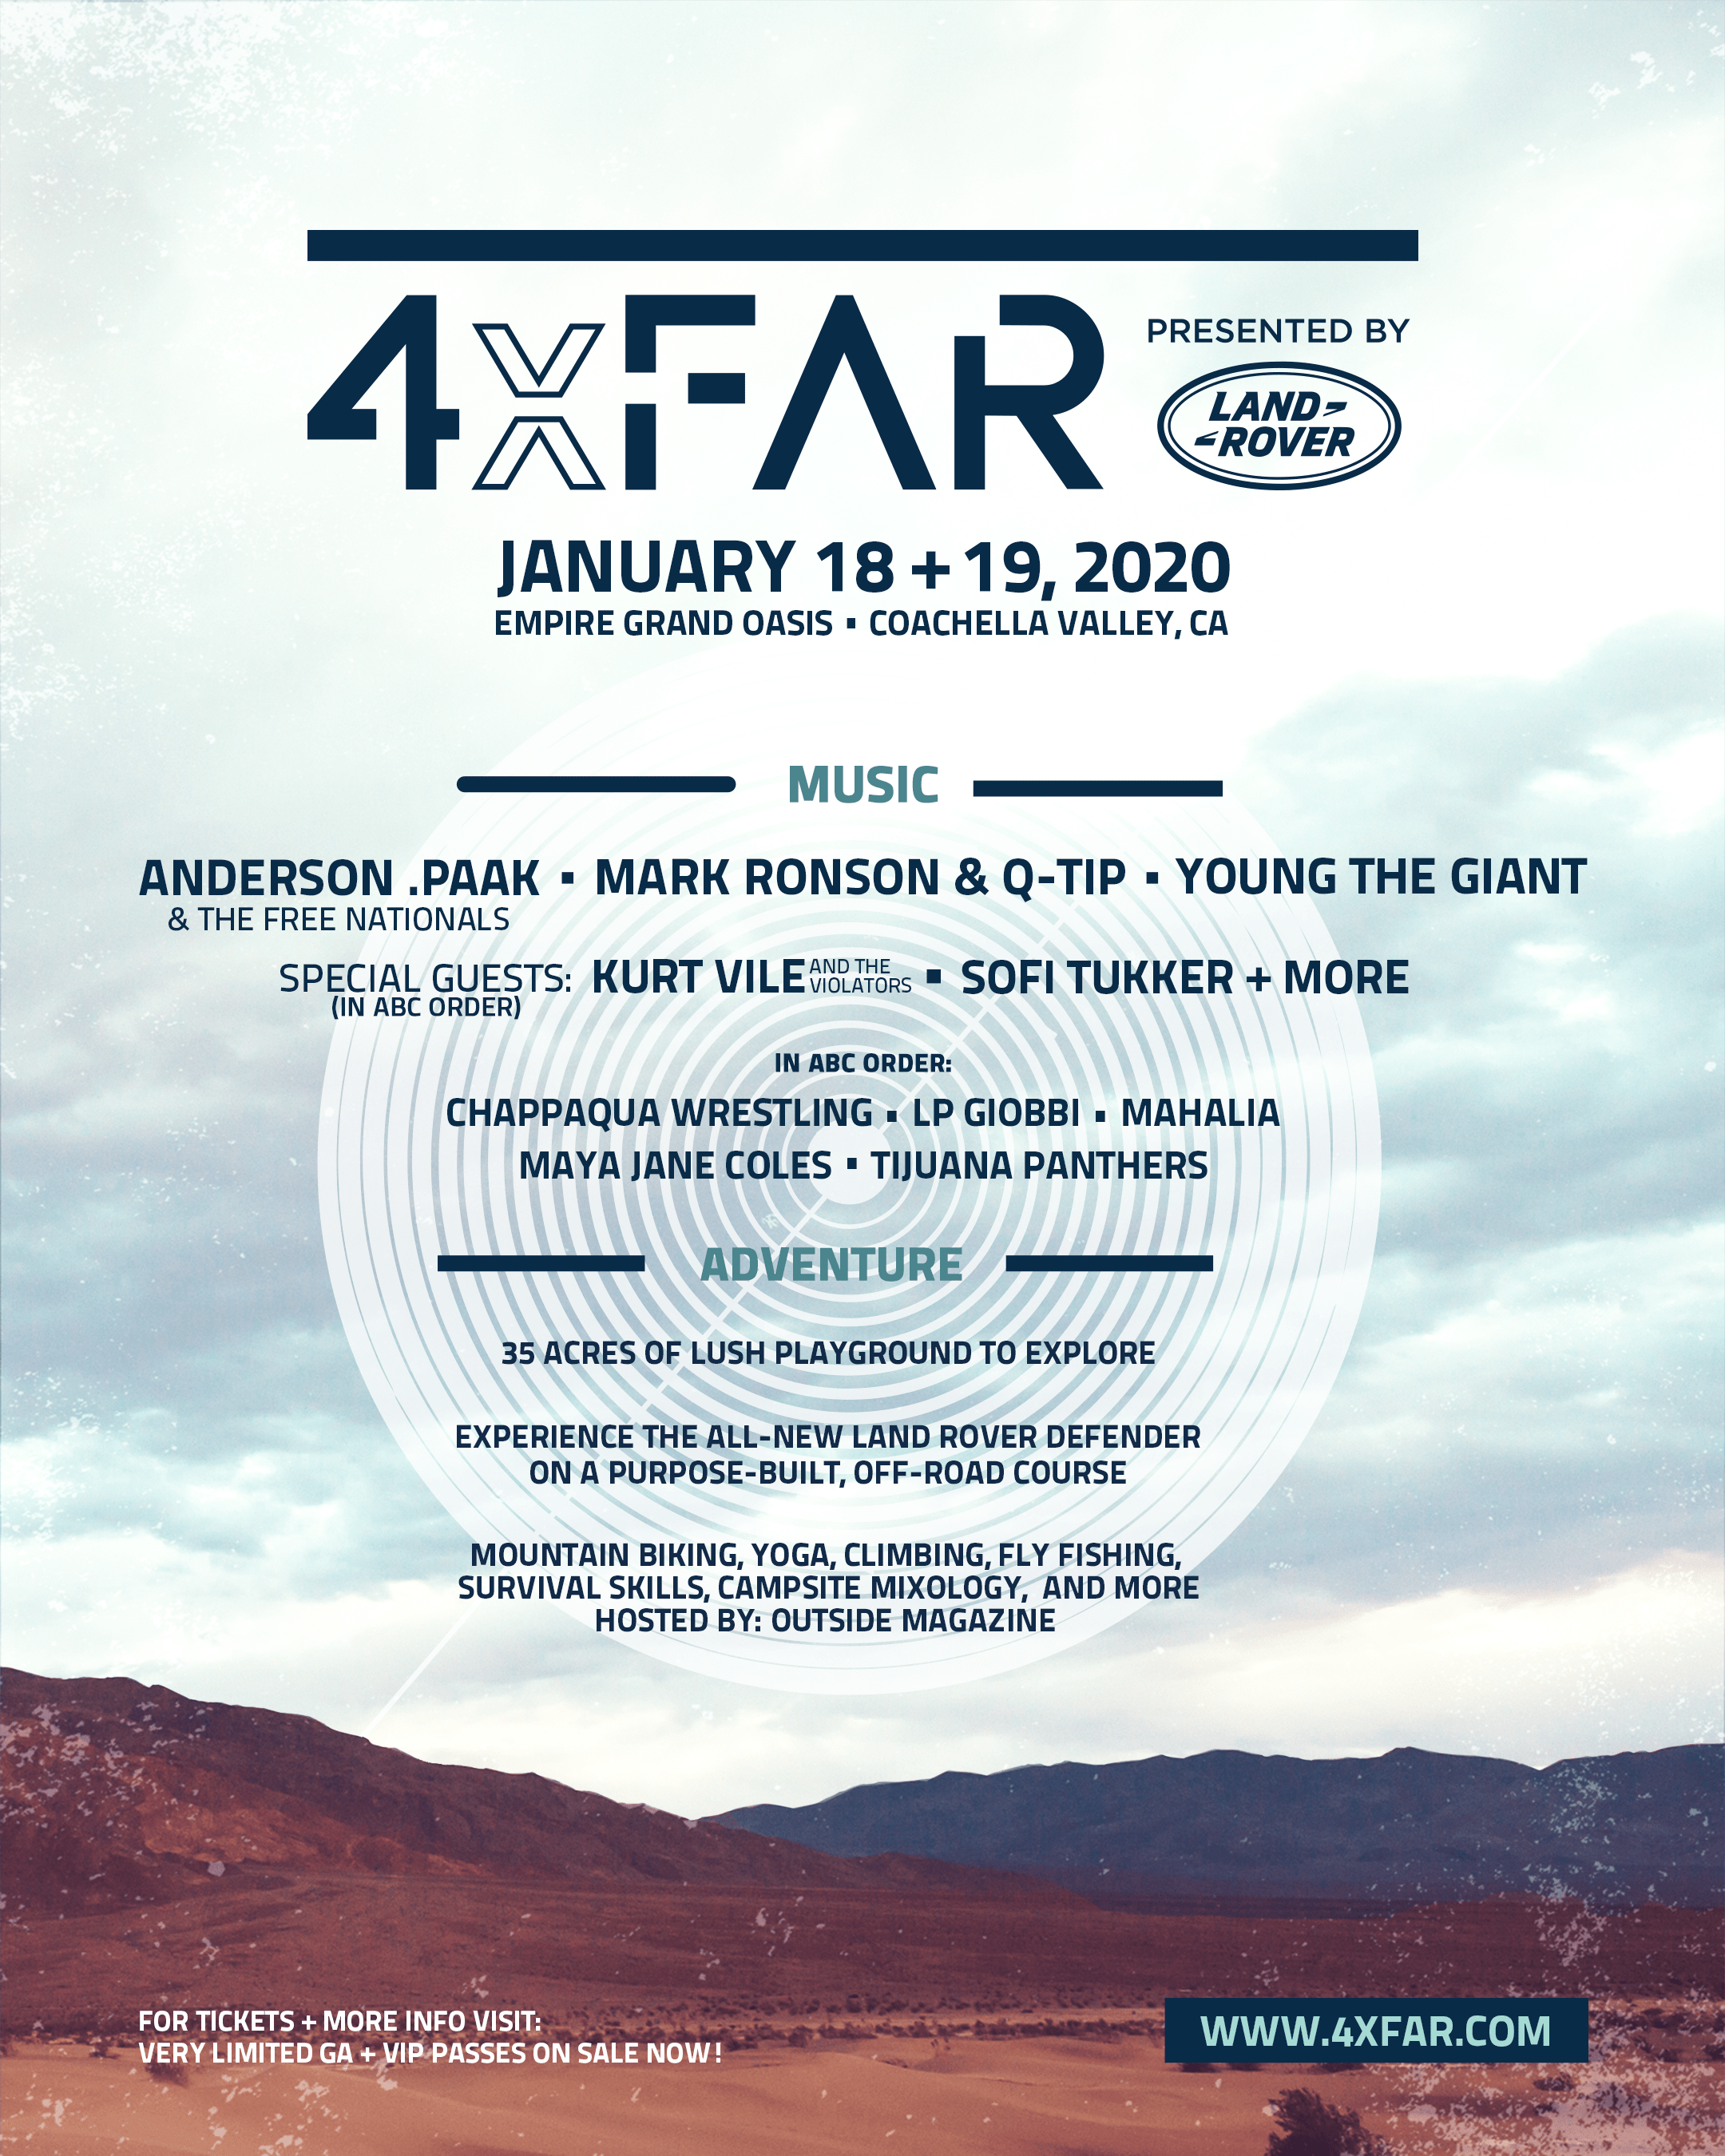 4xFAR Announces New Music Festival In Coachella Valley